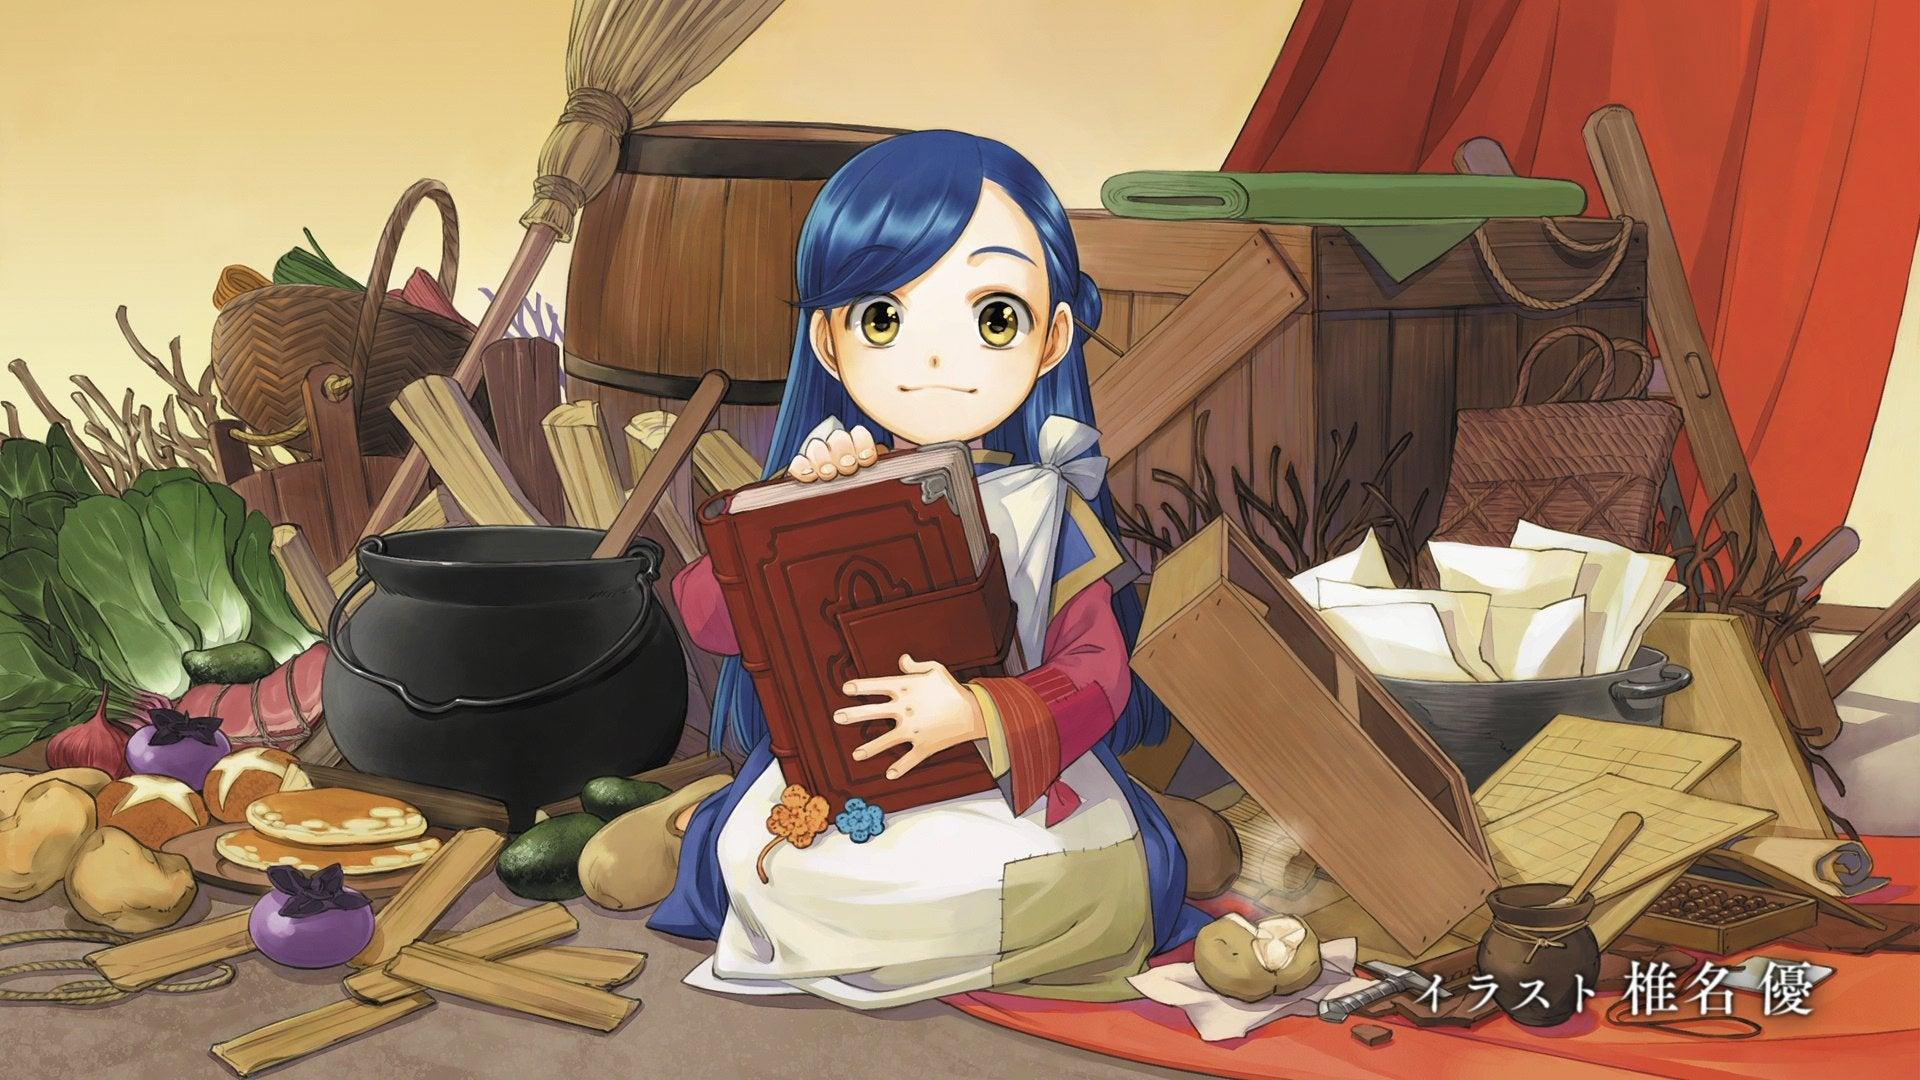 Bookworm anime with intellectual character, similar to how a realist hero rebuilt the kingdom, Ascendance of a Bookworm